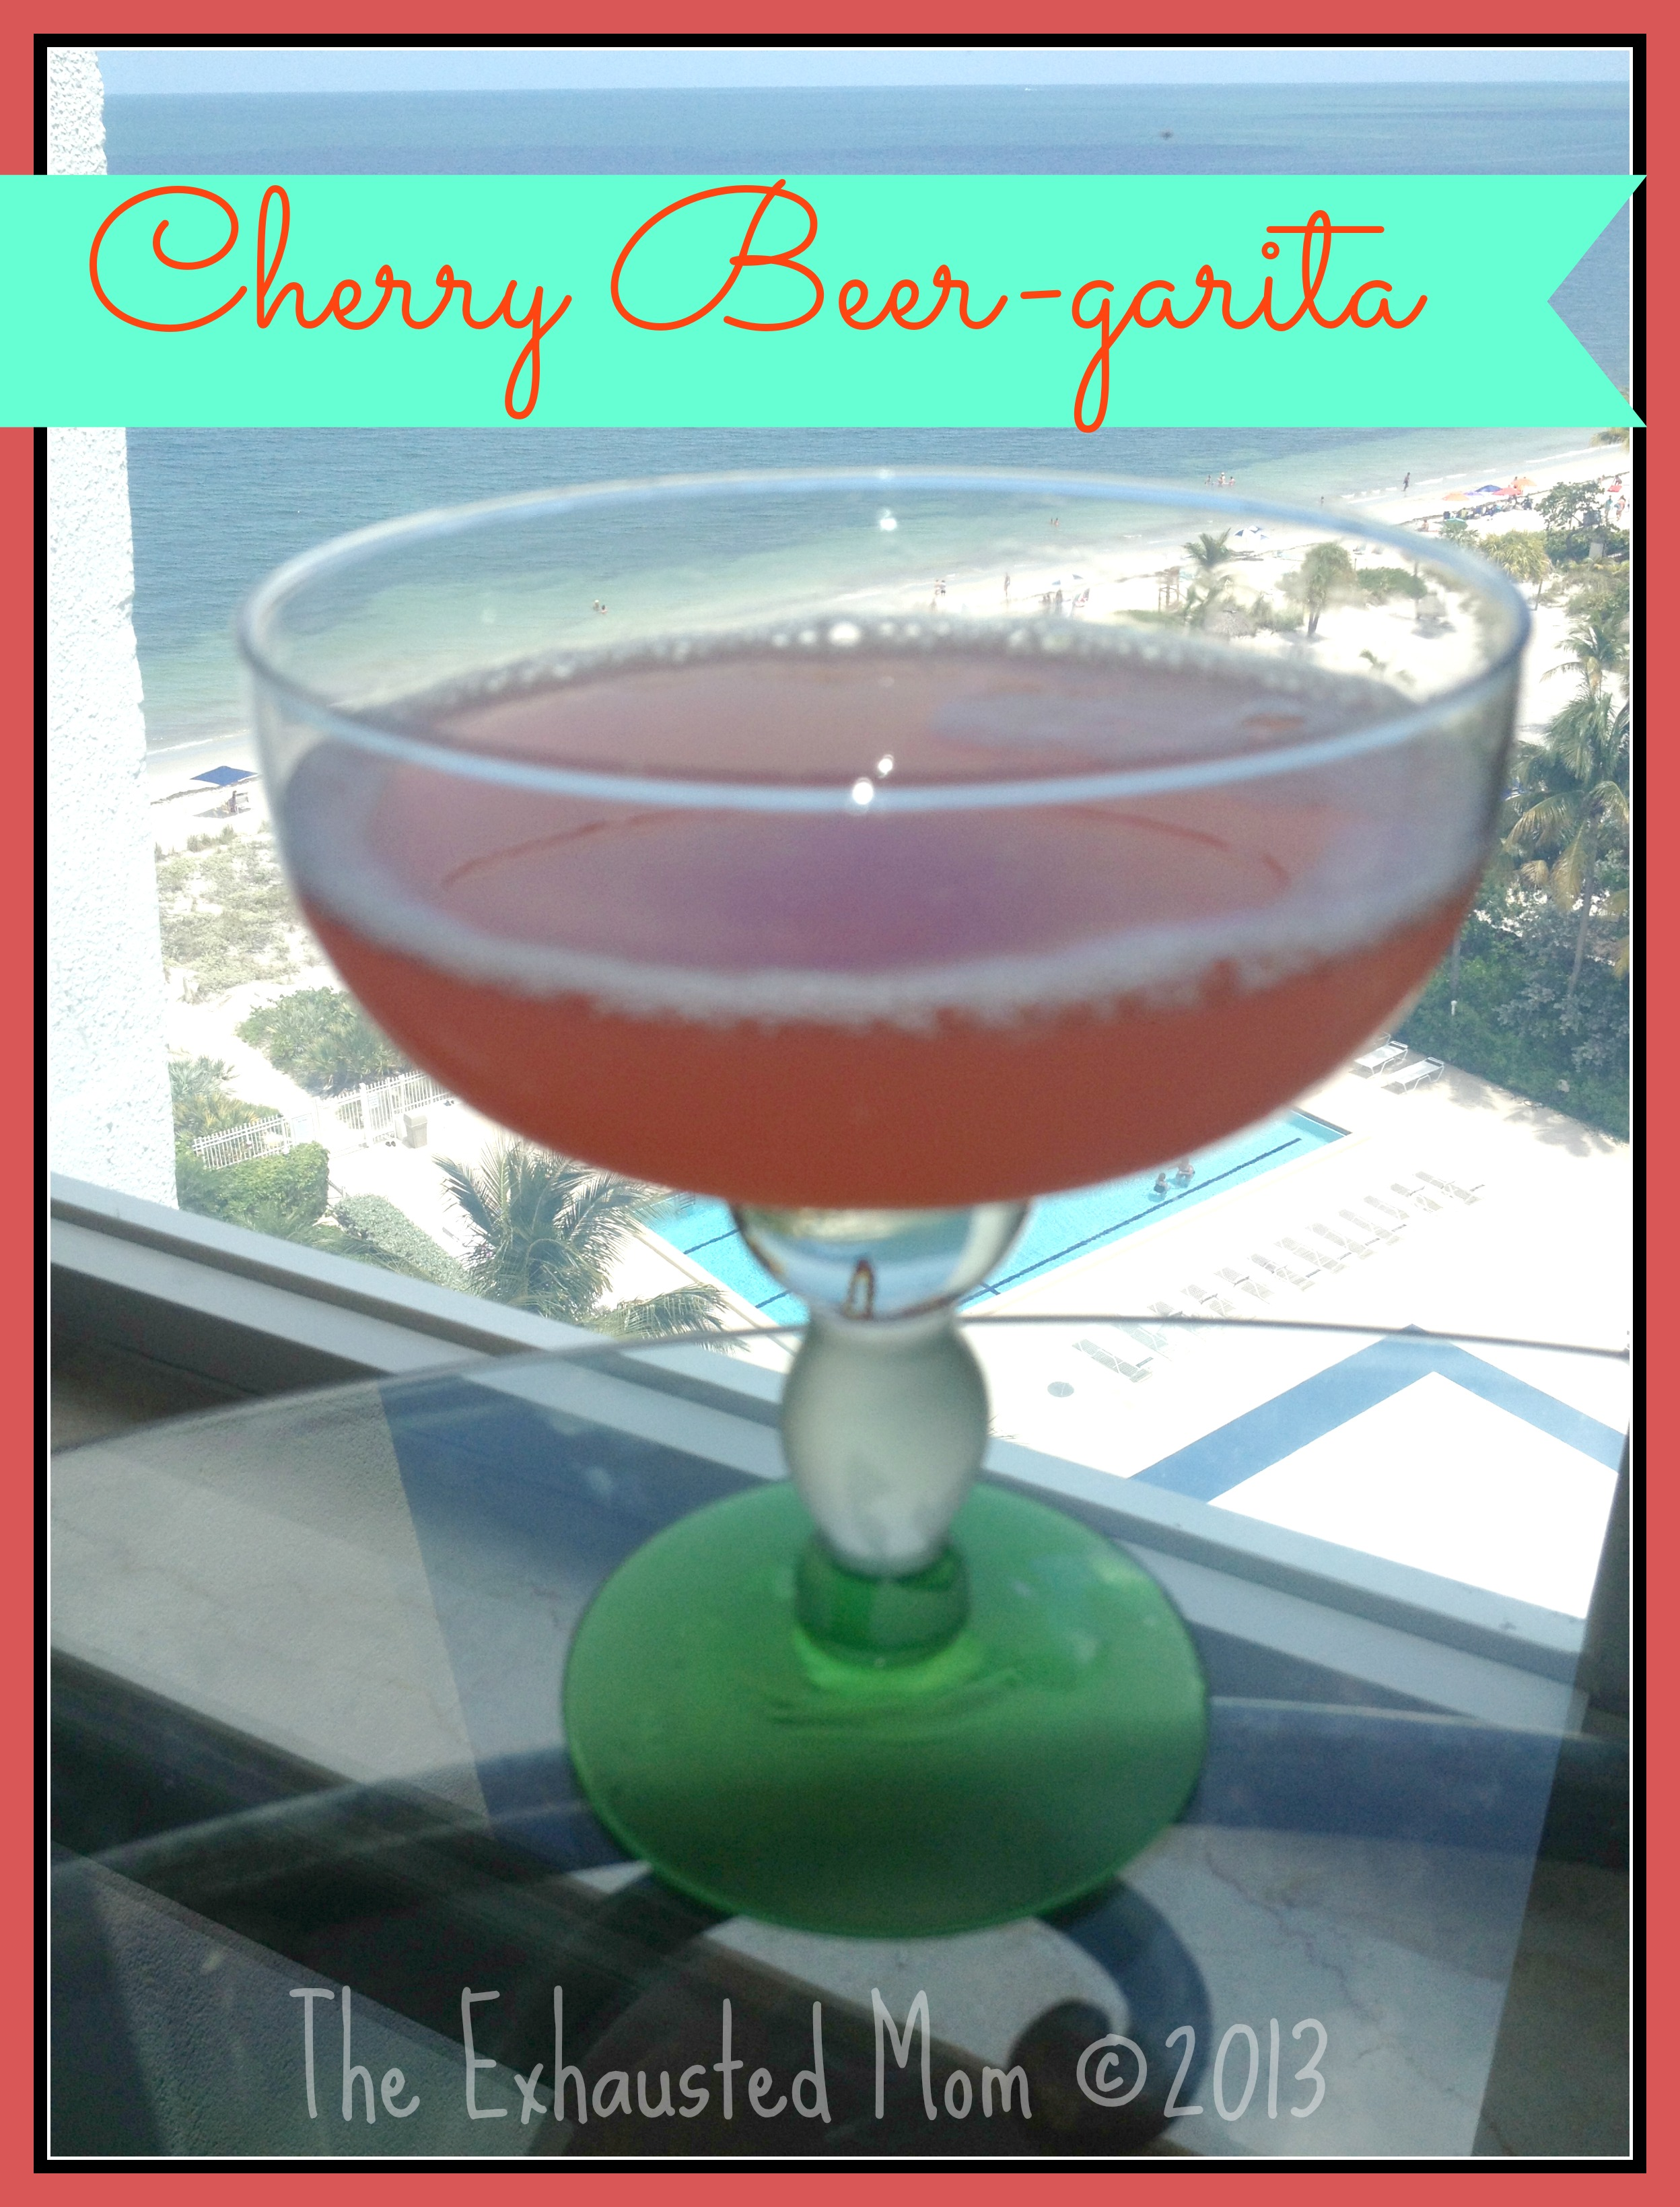 Cherry Beer-garita 2